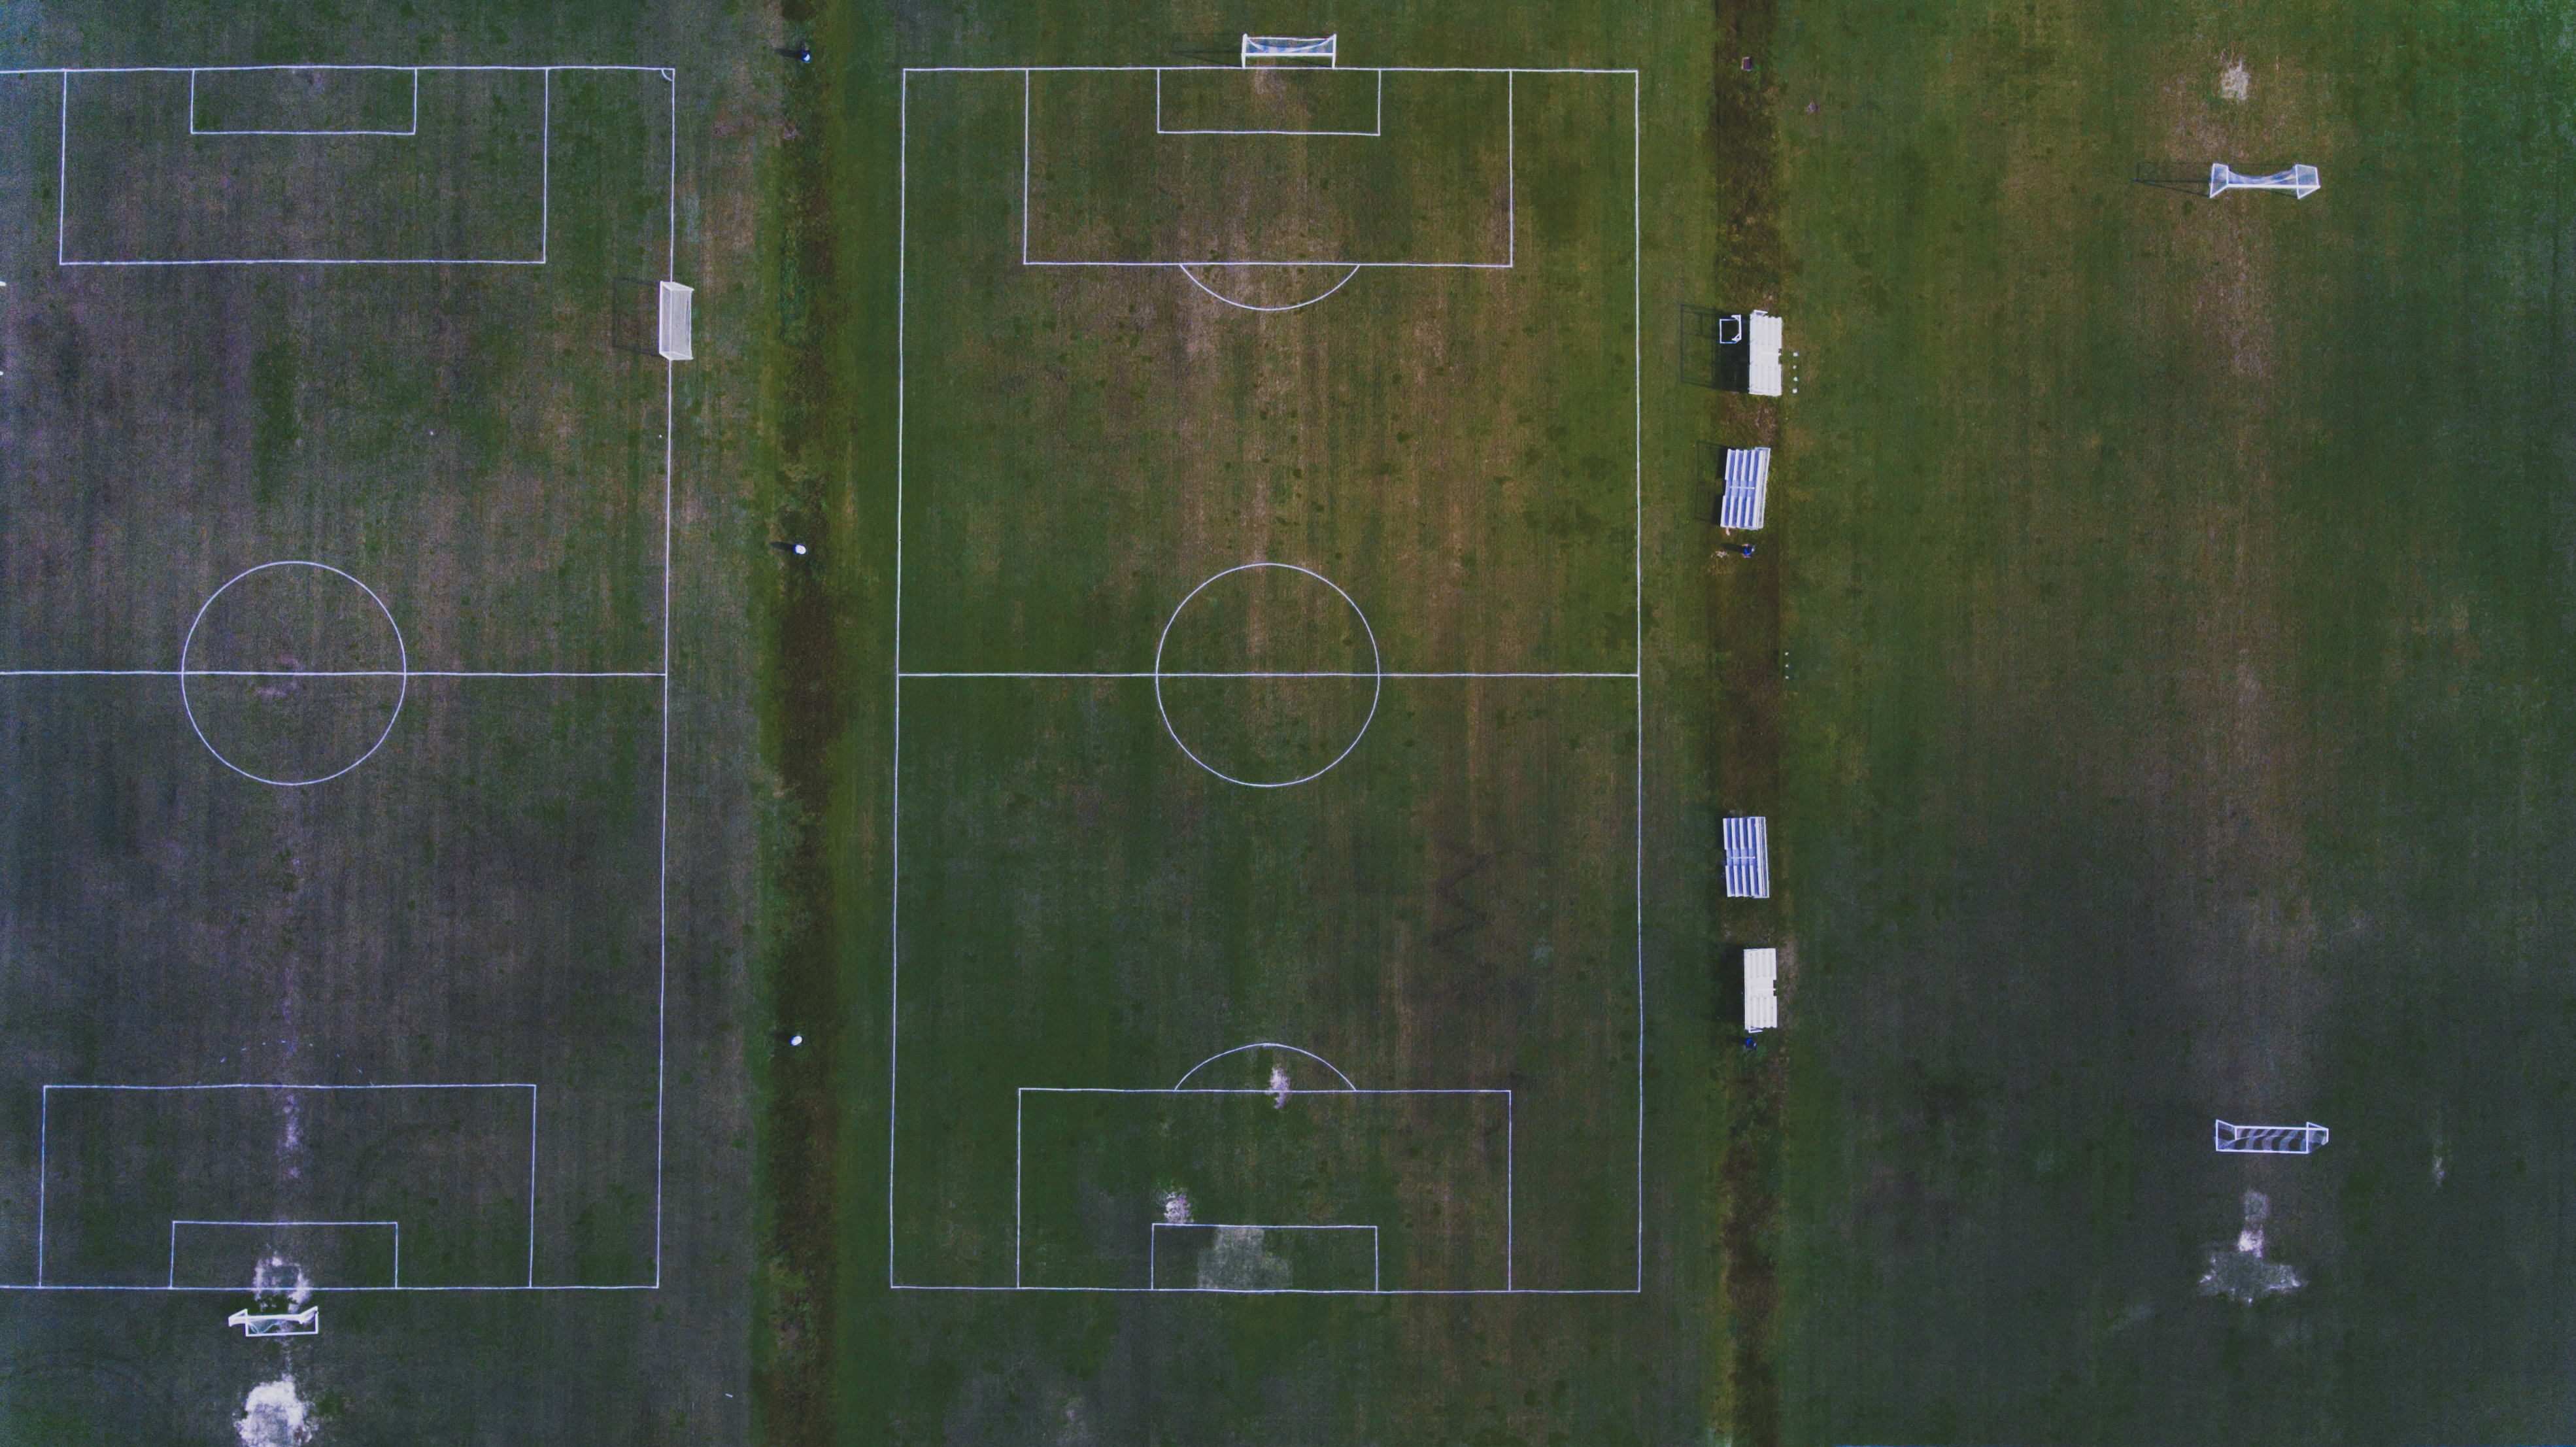 birds eye photography of two soccer fields